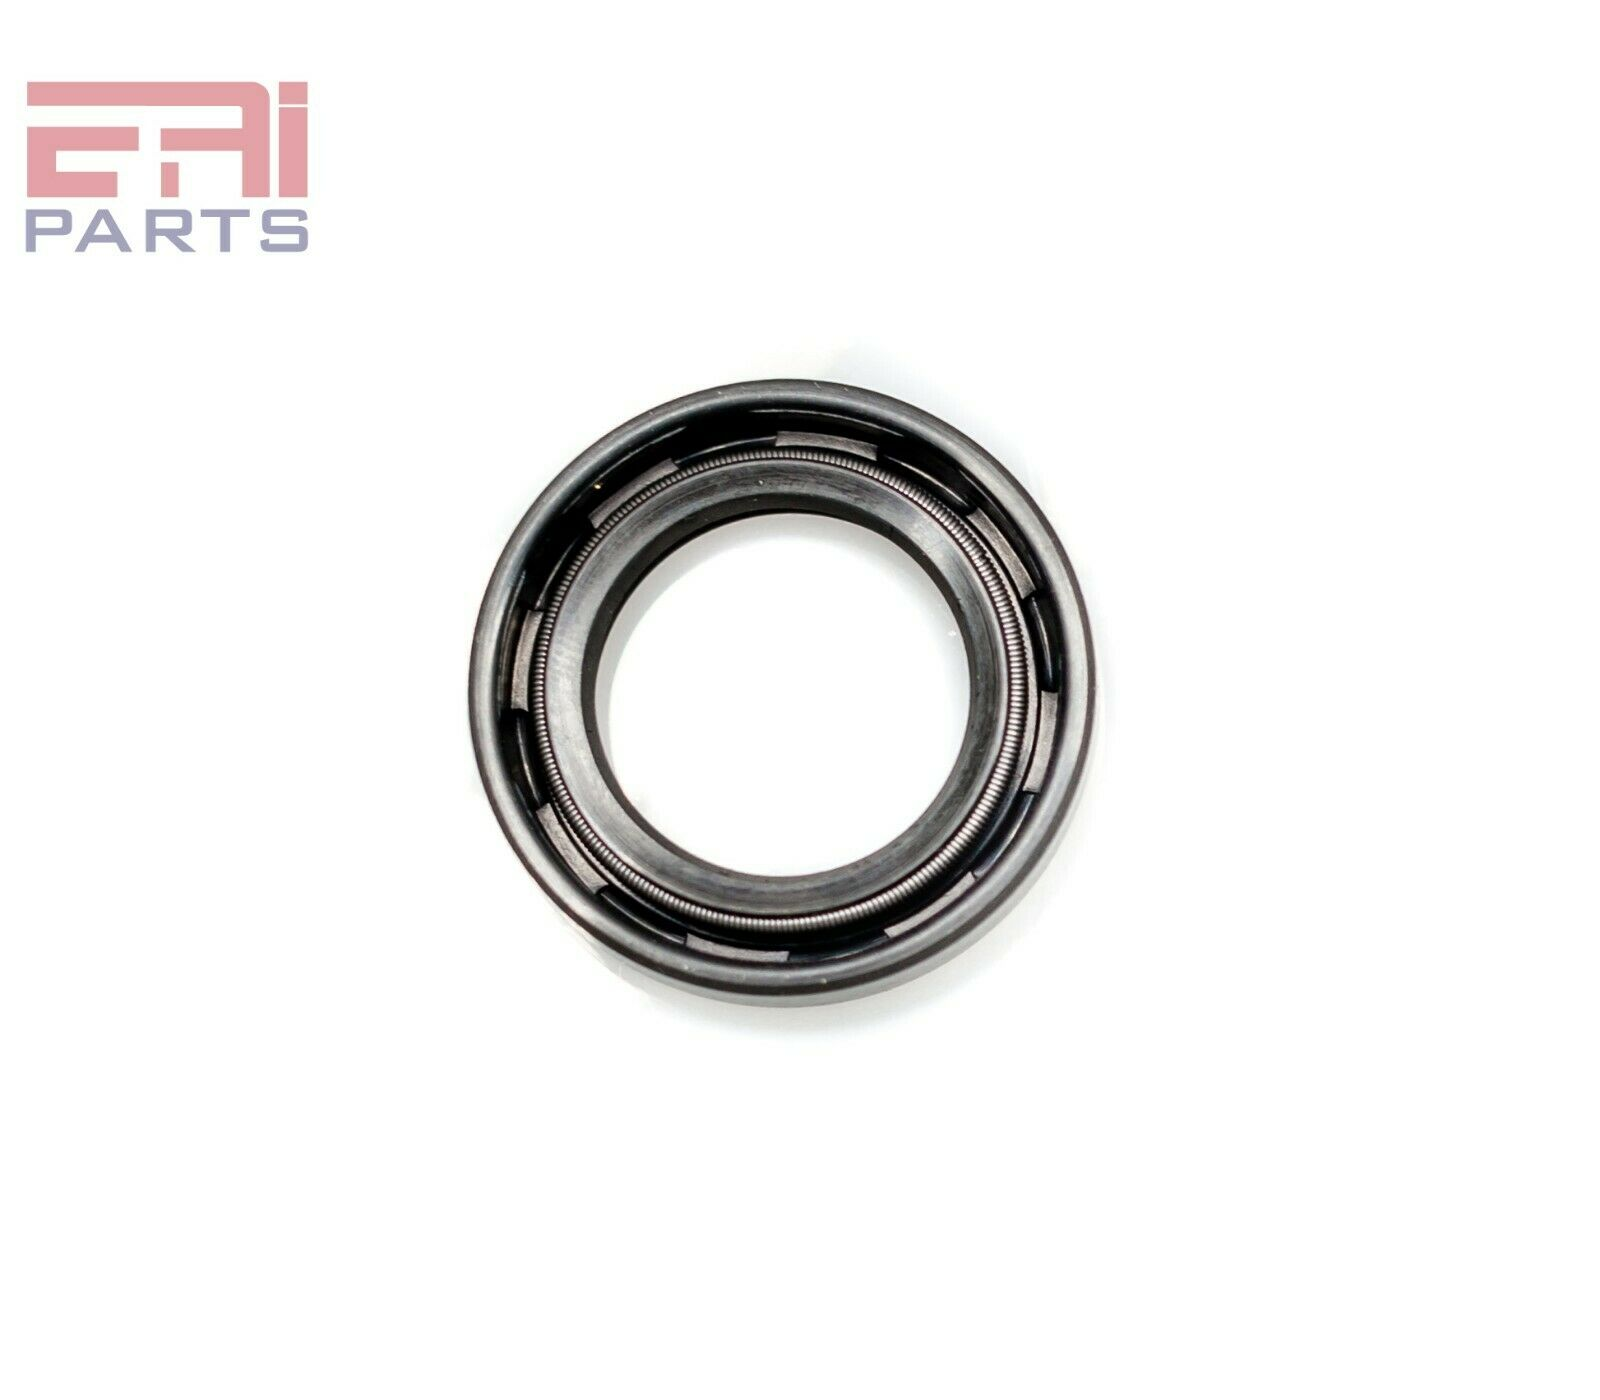 "EAI Oil Shaft Seal 1 7//8/""x2 7//8/""x3//8/"" TC Dbl Lip w// Spring 1.875/""x2.875/""x0.375/"""